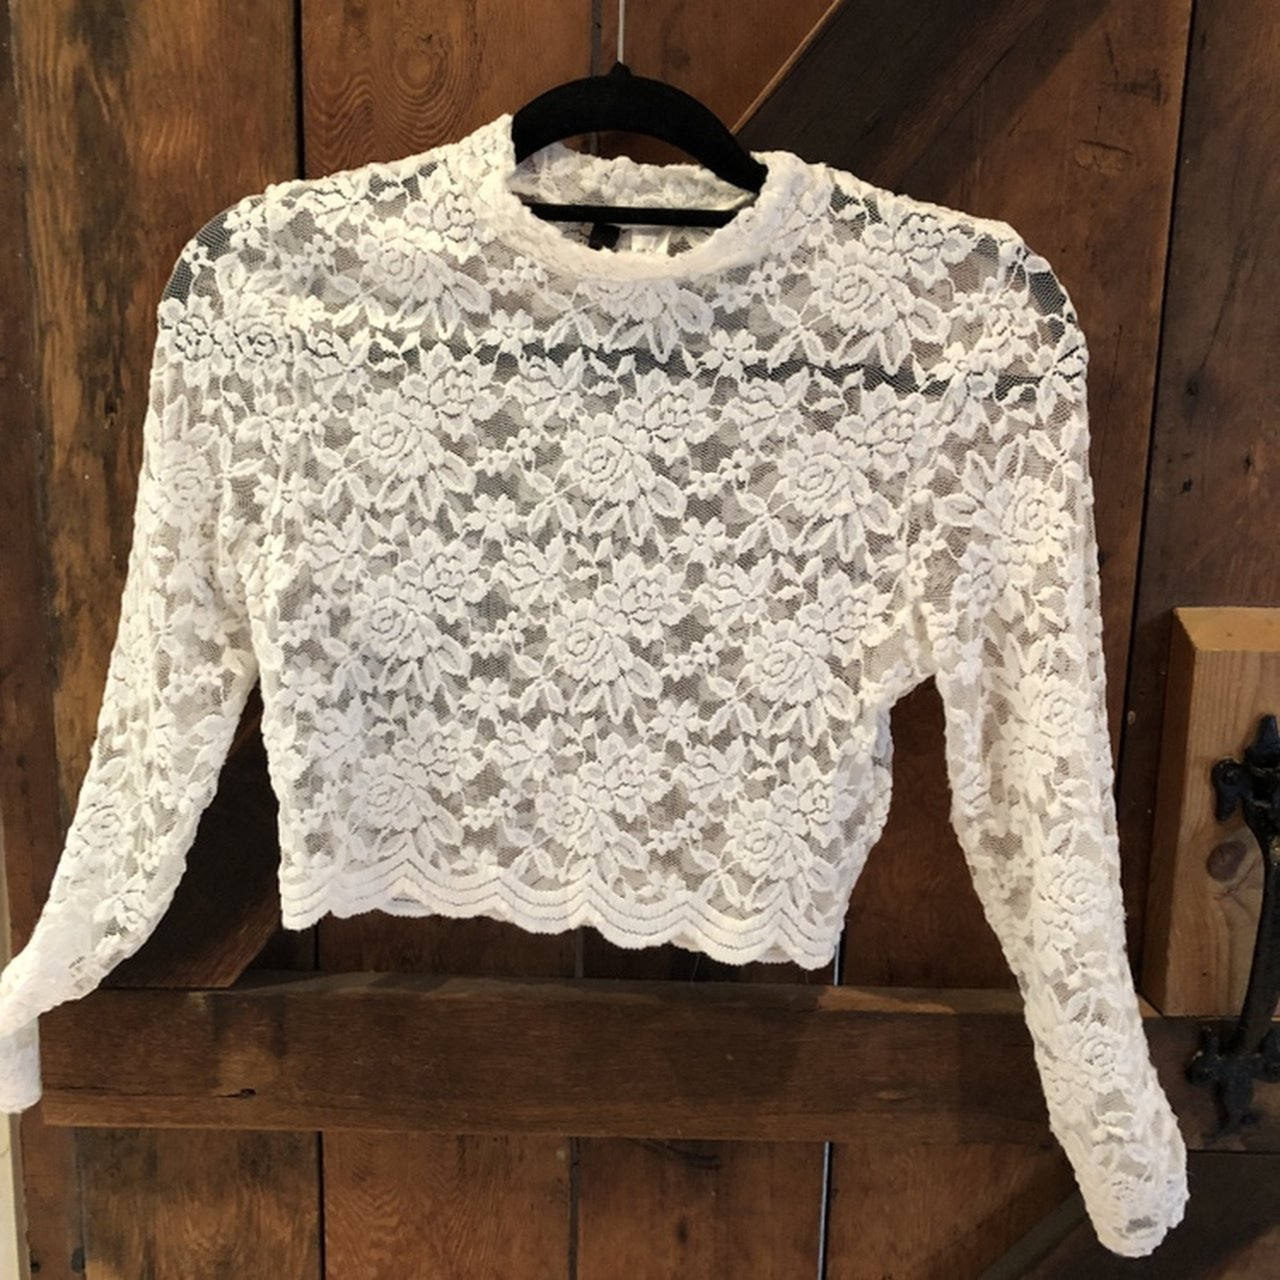 6dc62e7a08820 White lace high neck crop top. Great condition. Tags   HM - Depop